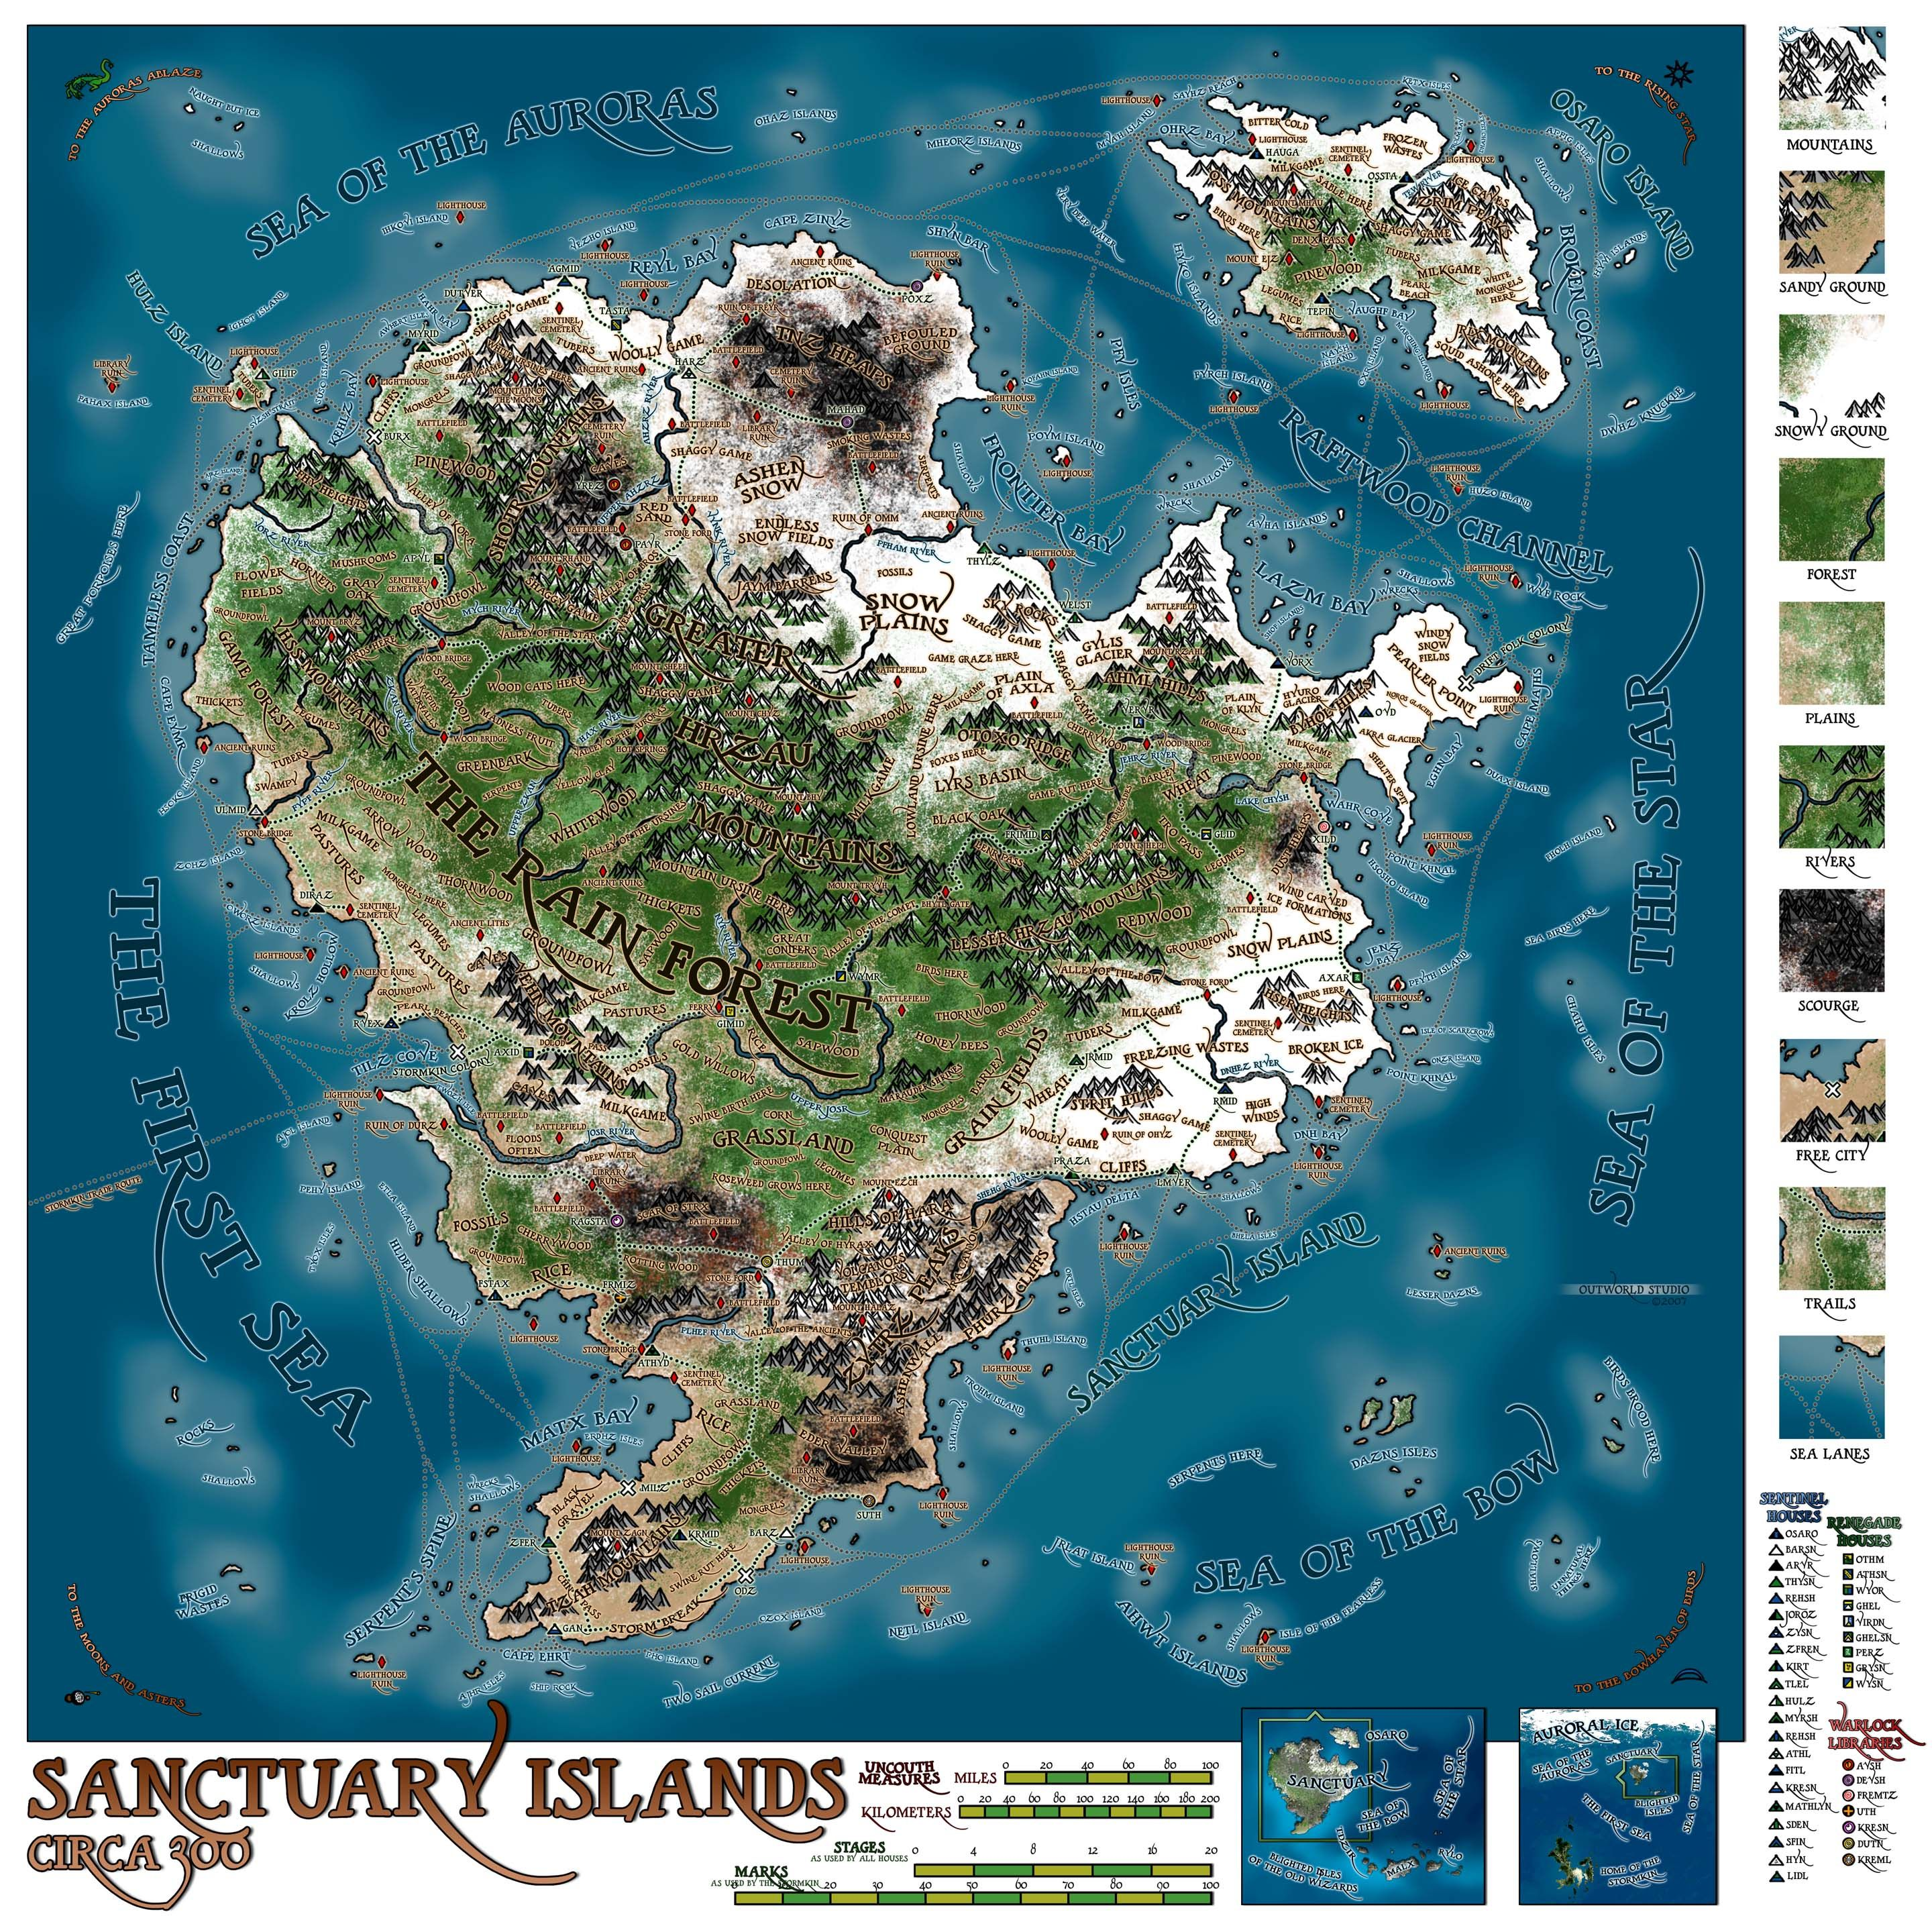 Sanctuary Islands  Book of Maps  Pinterest  Fantasy map RPG